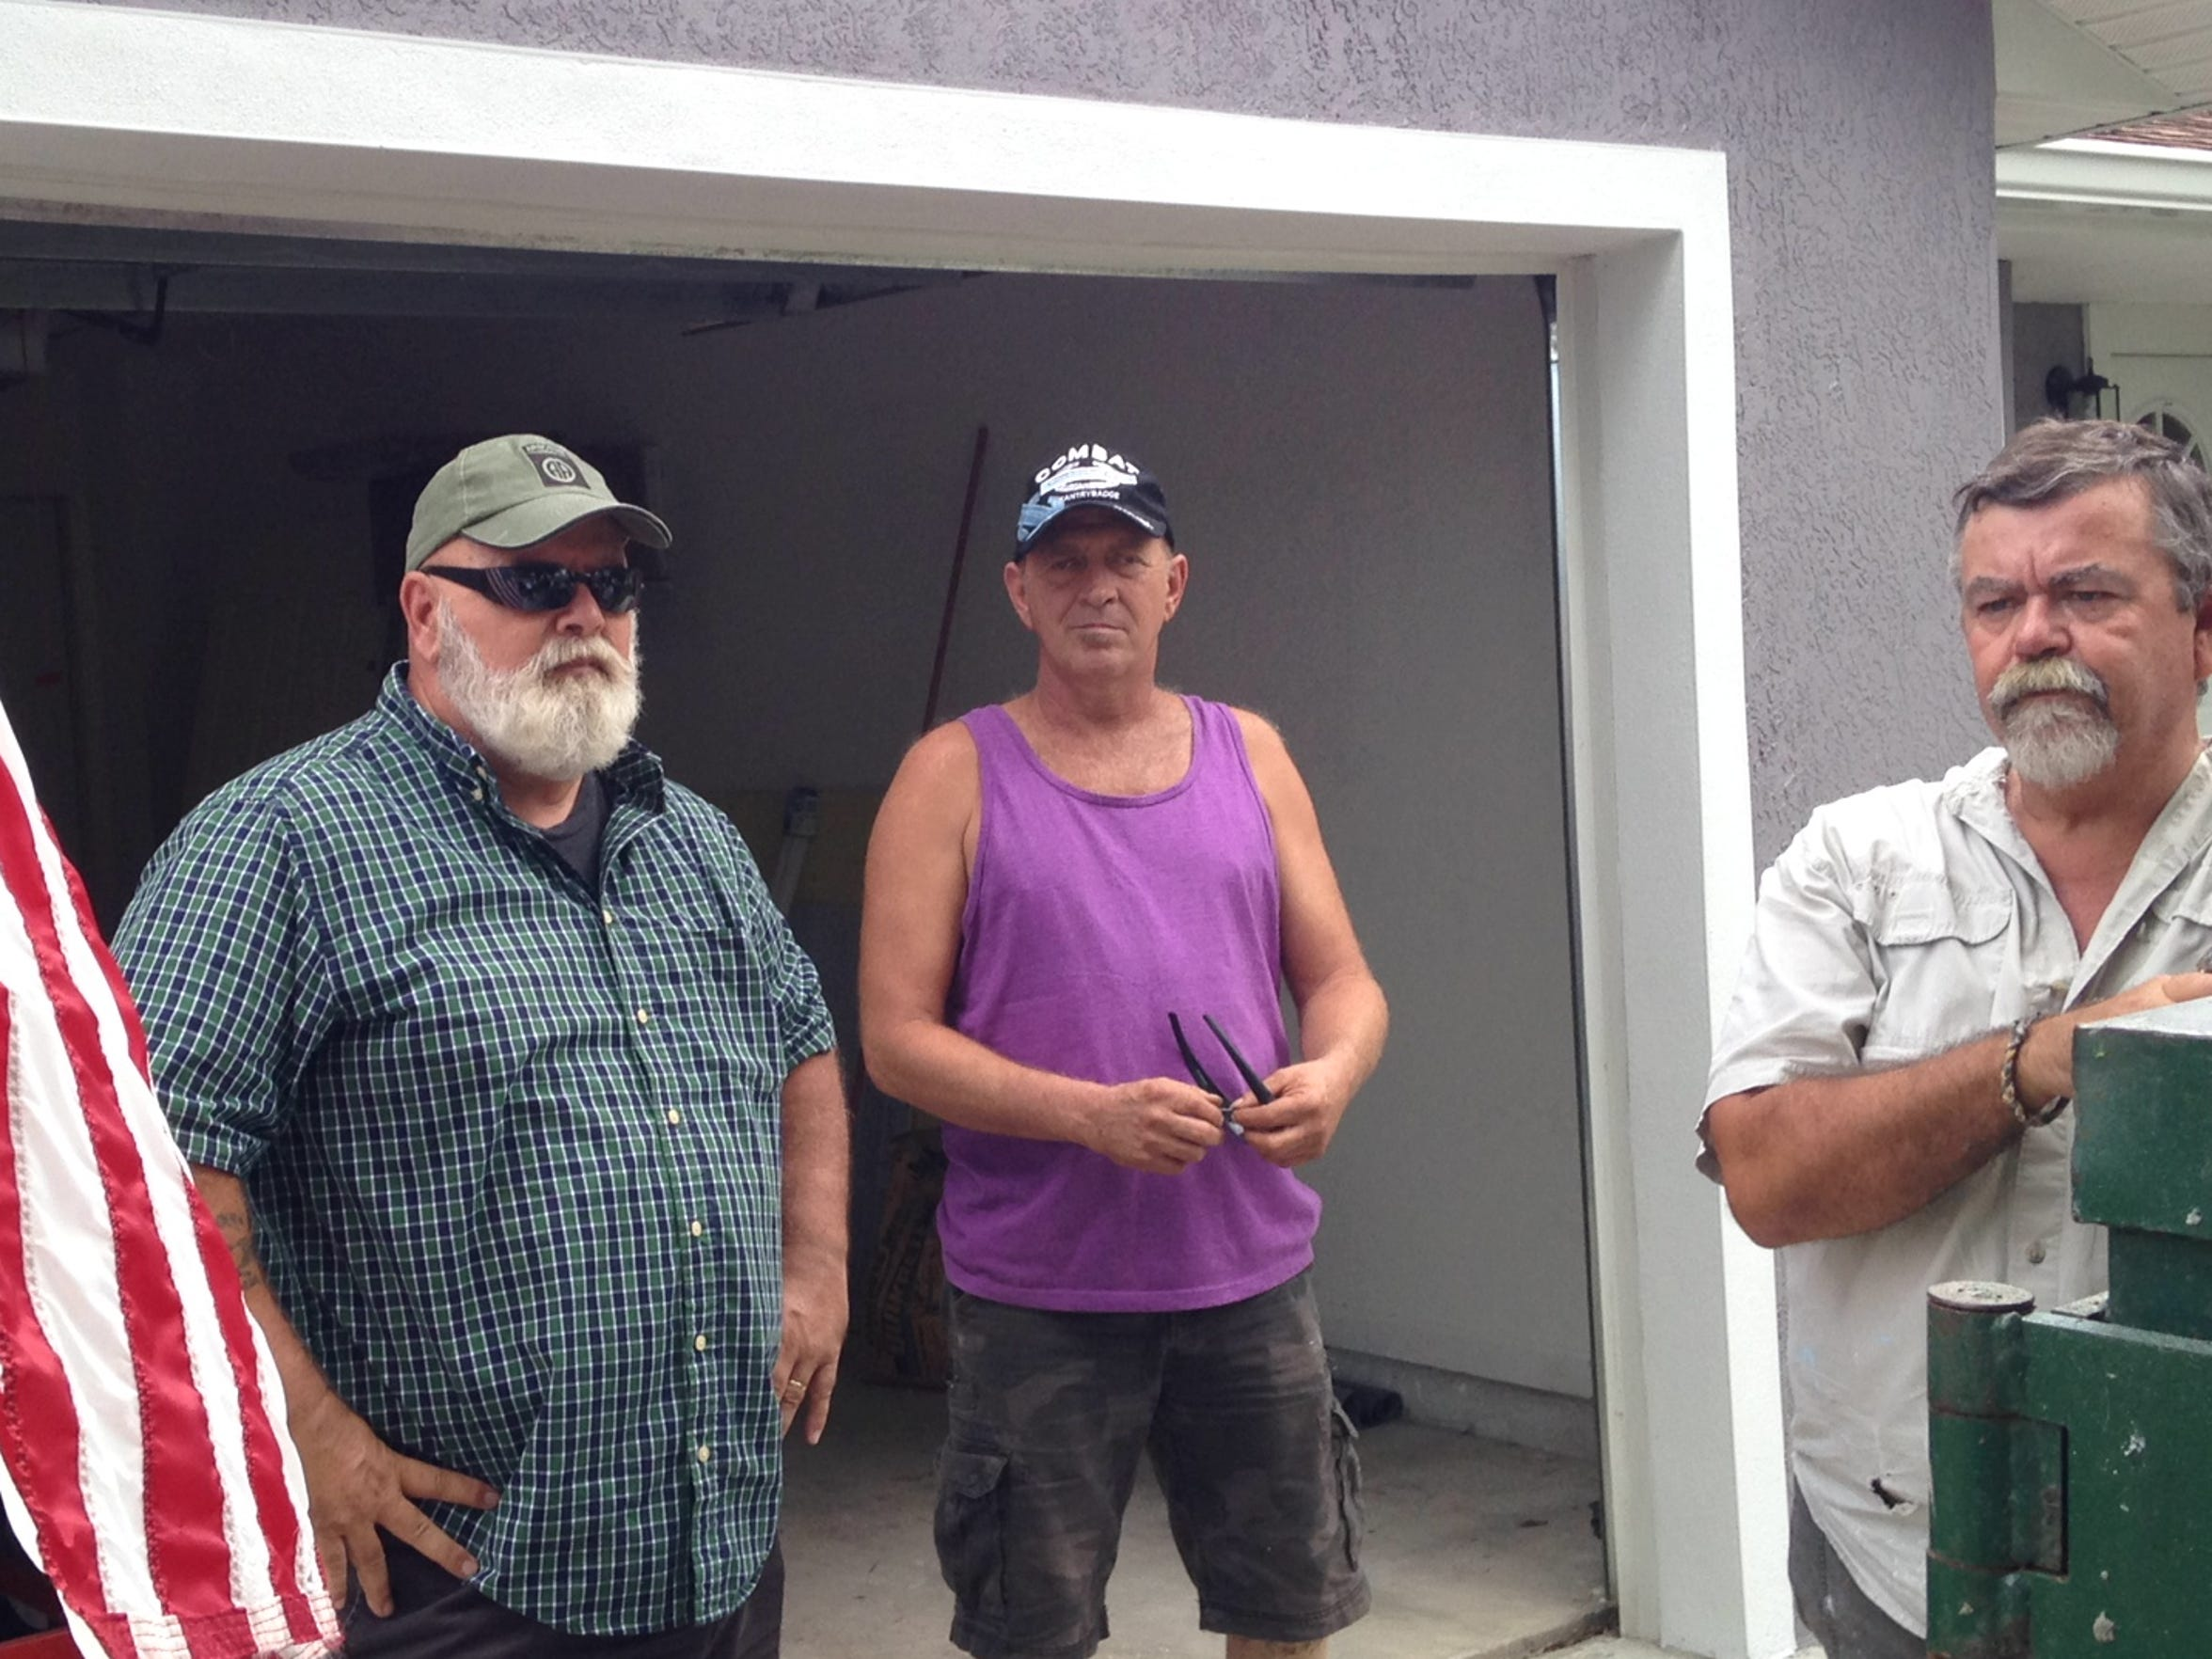 David Isnardi, left, Stephen Hamrick, center, and Bob Williams discuss work plans for the finishing touches to the house Hamrick received from the city and the Space Coast Paratroopers Association.